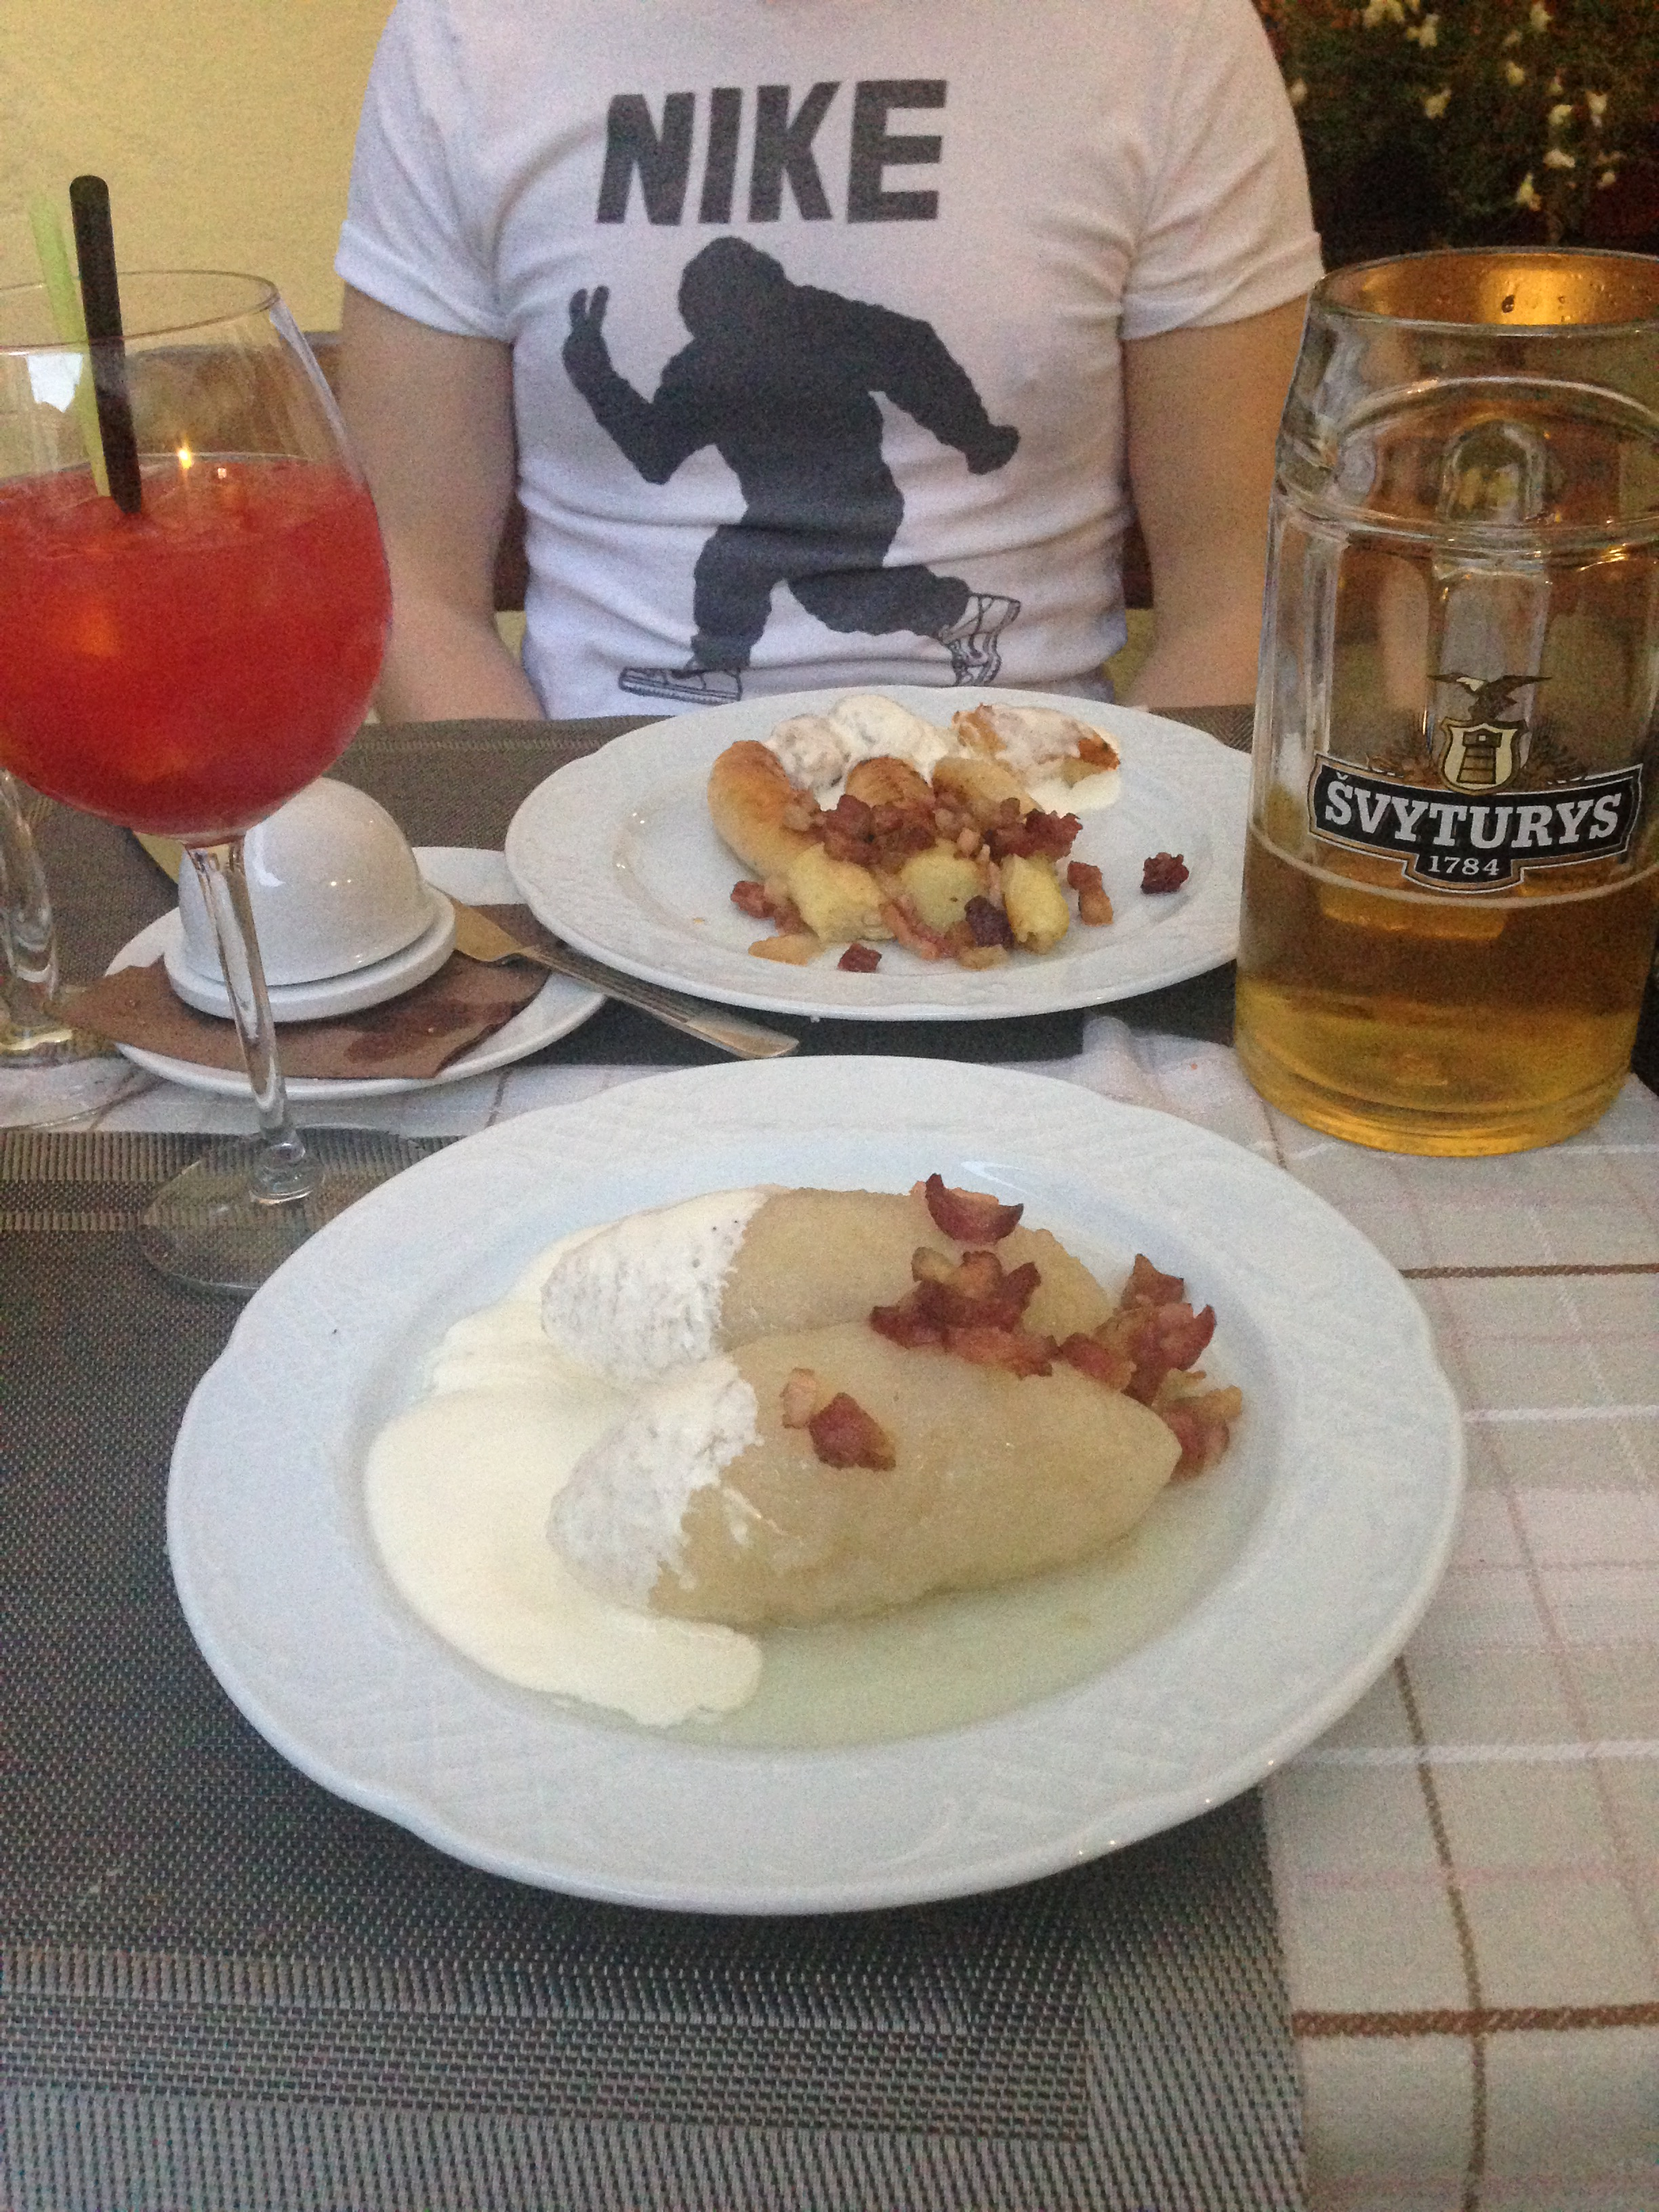 In the foreground are zeppelins - a traditional Lithuanian dish of meat-stuffed potato, served with sour cream and bacon bits - and in the background is potato sausages. The duck breast is also a recommendation.